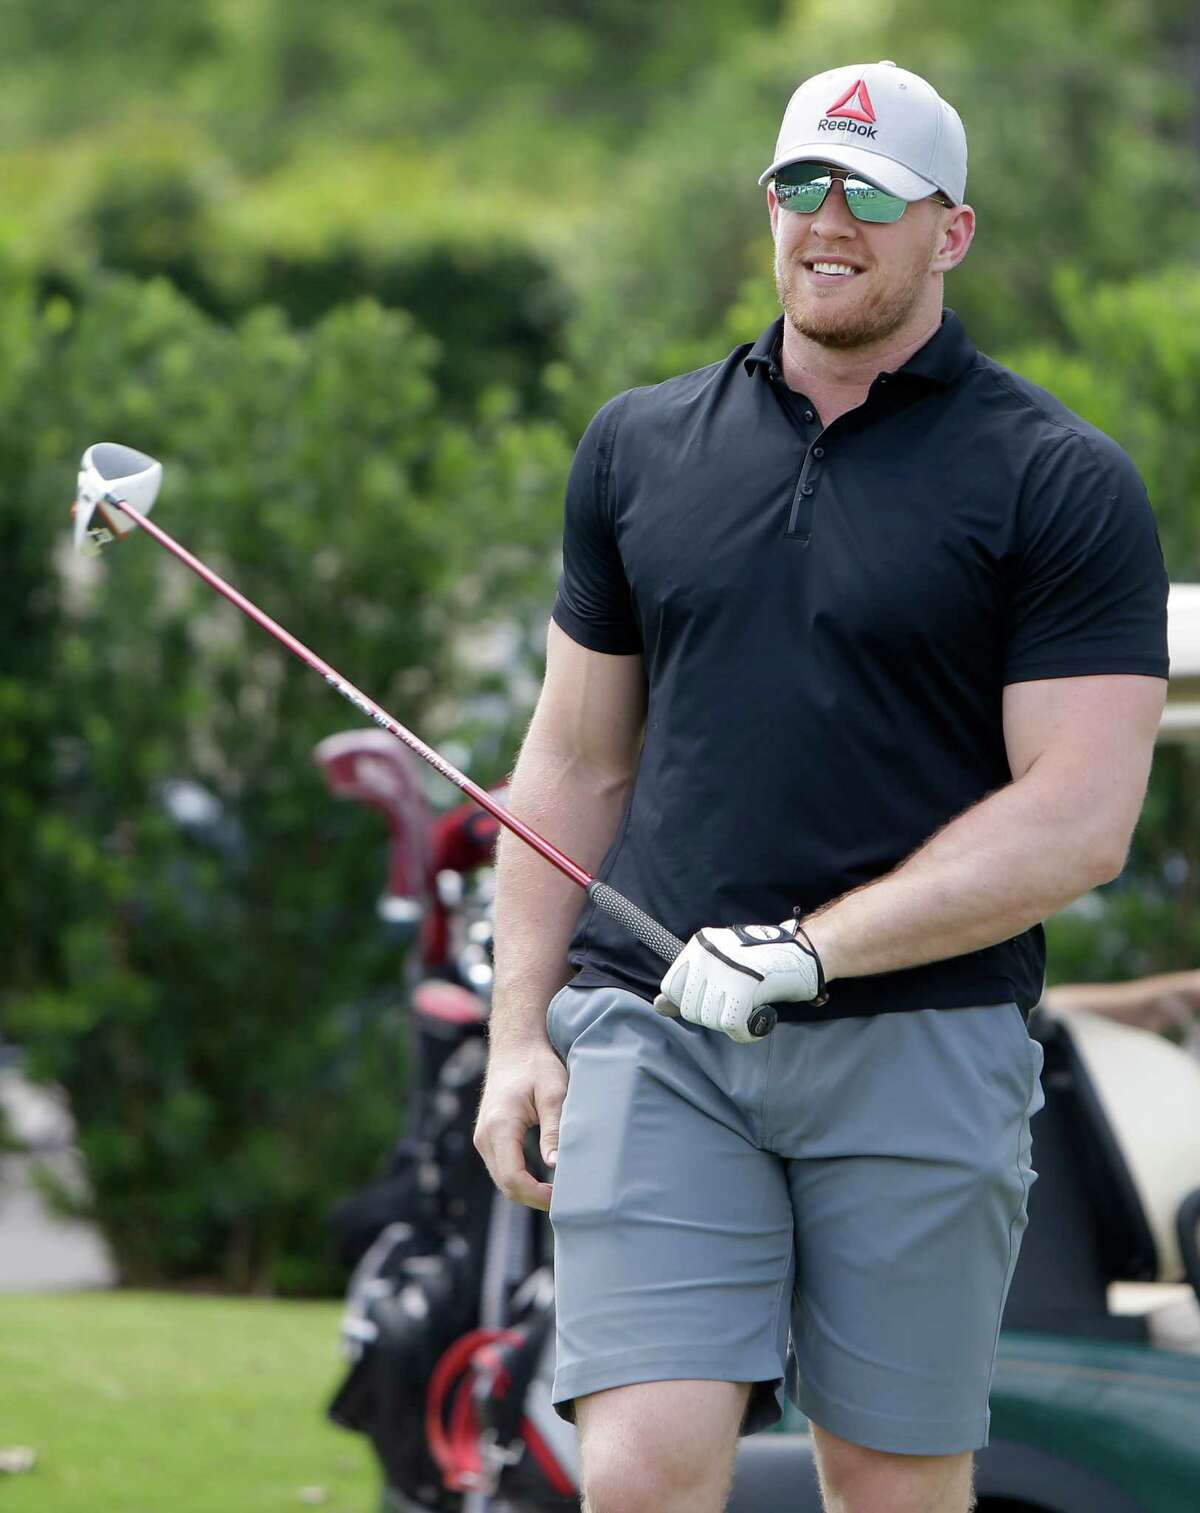 Texans J.J. Watt prepares to tee off during the Texans charity golf tournament at River Oaks Country Club, 1600 River Oaks Blvd., Monday, May 9, 2016, in Houston.